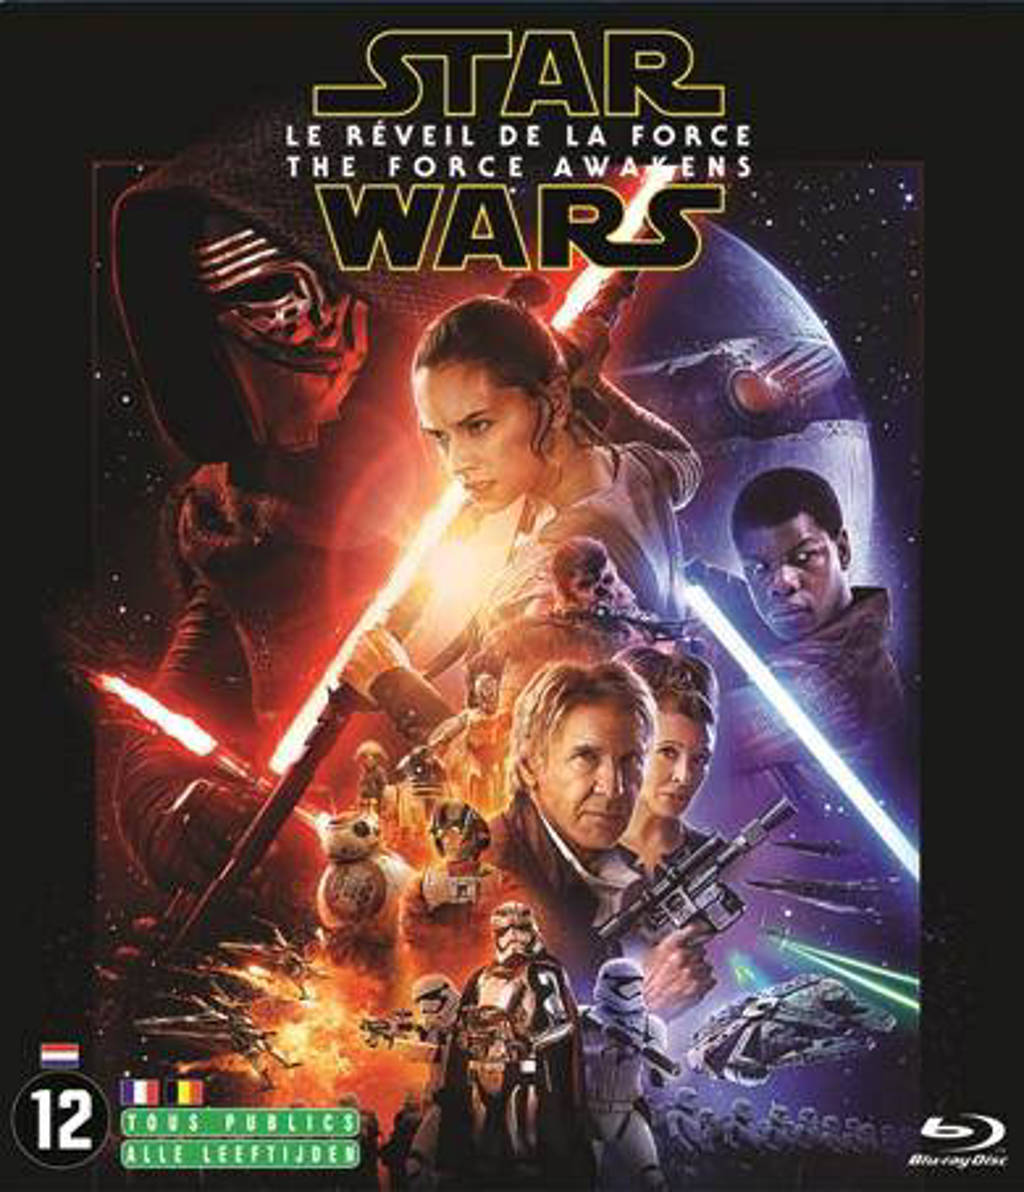 Star wars episode 7 – The force awakens (Blu-ray)